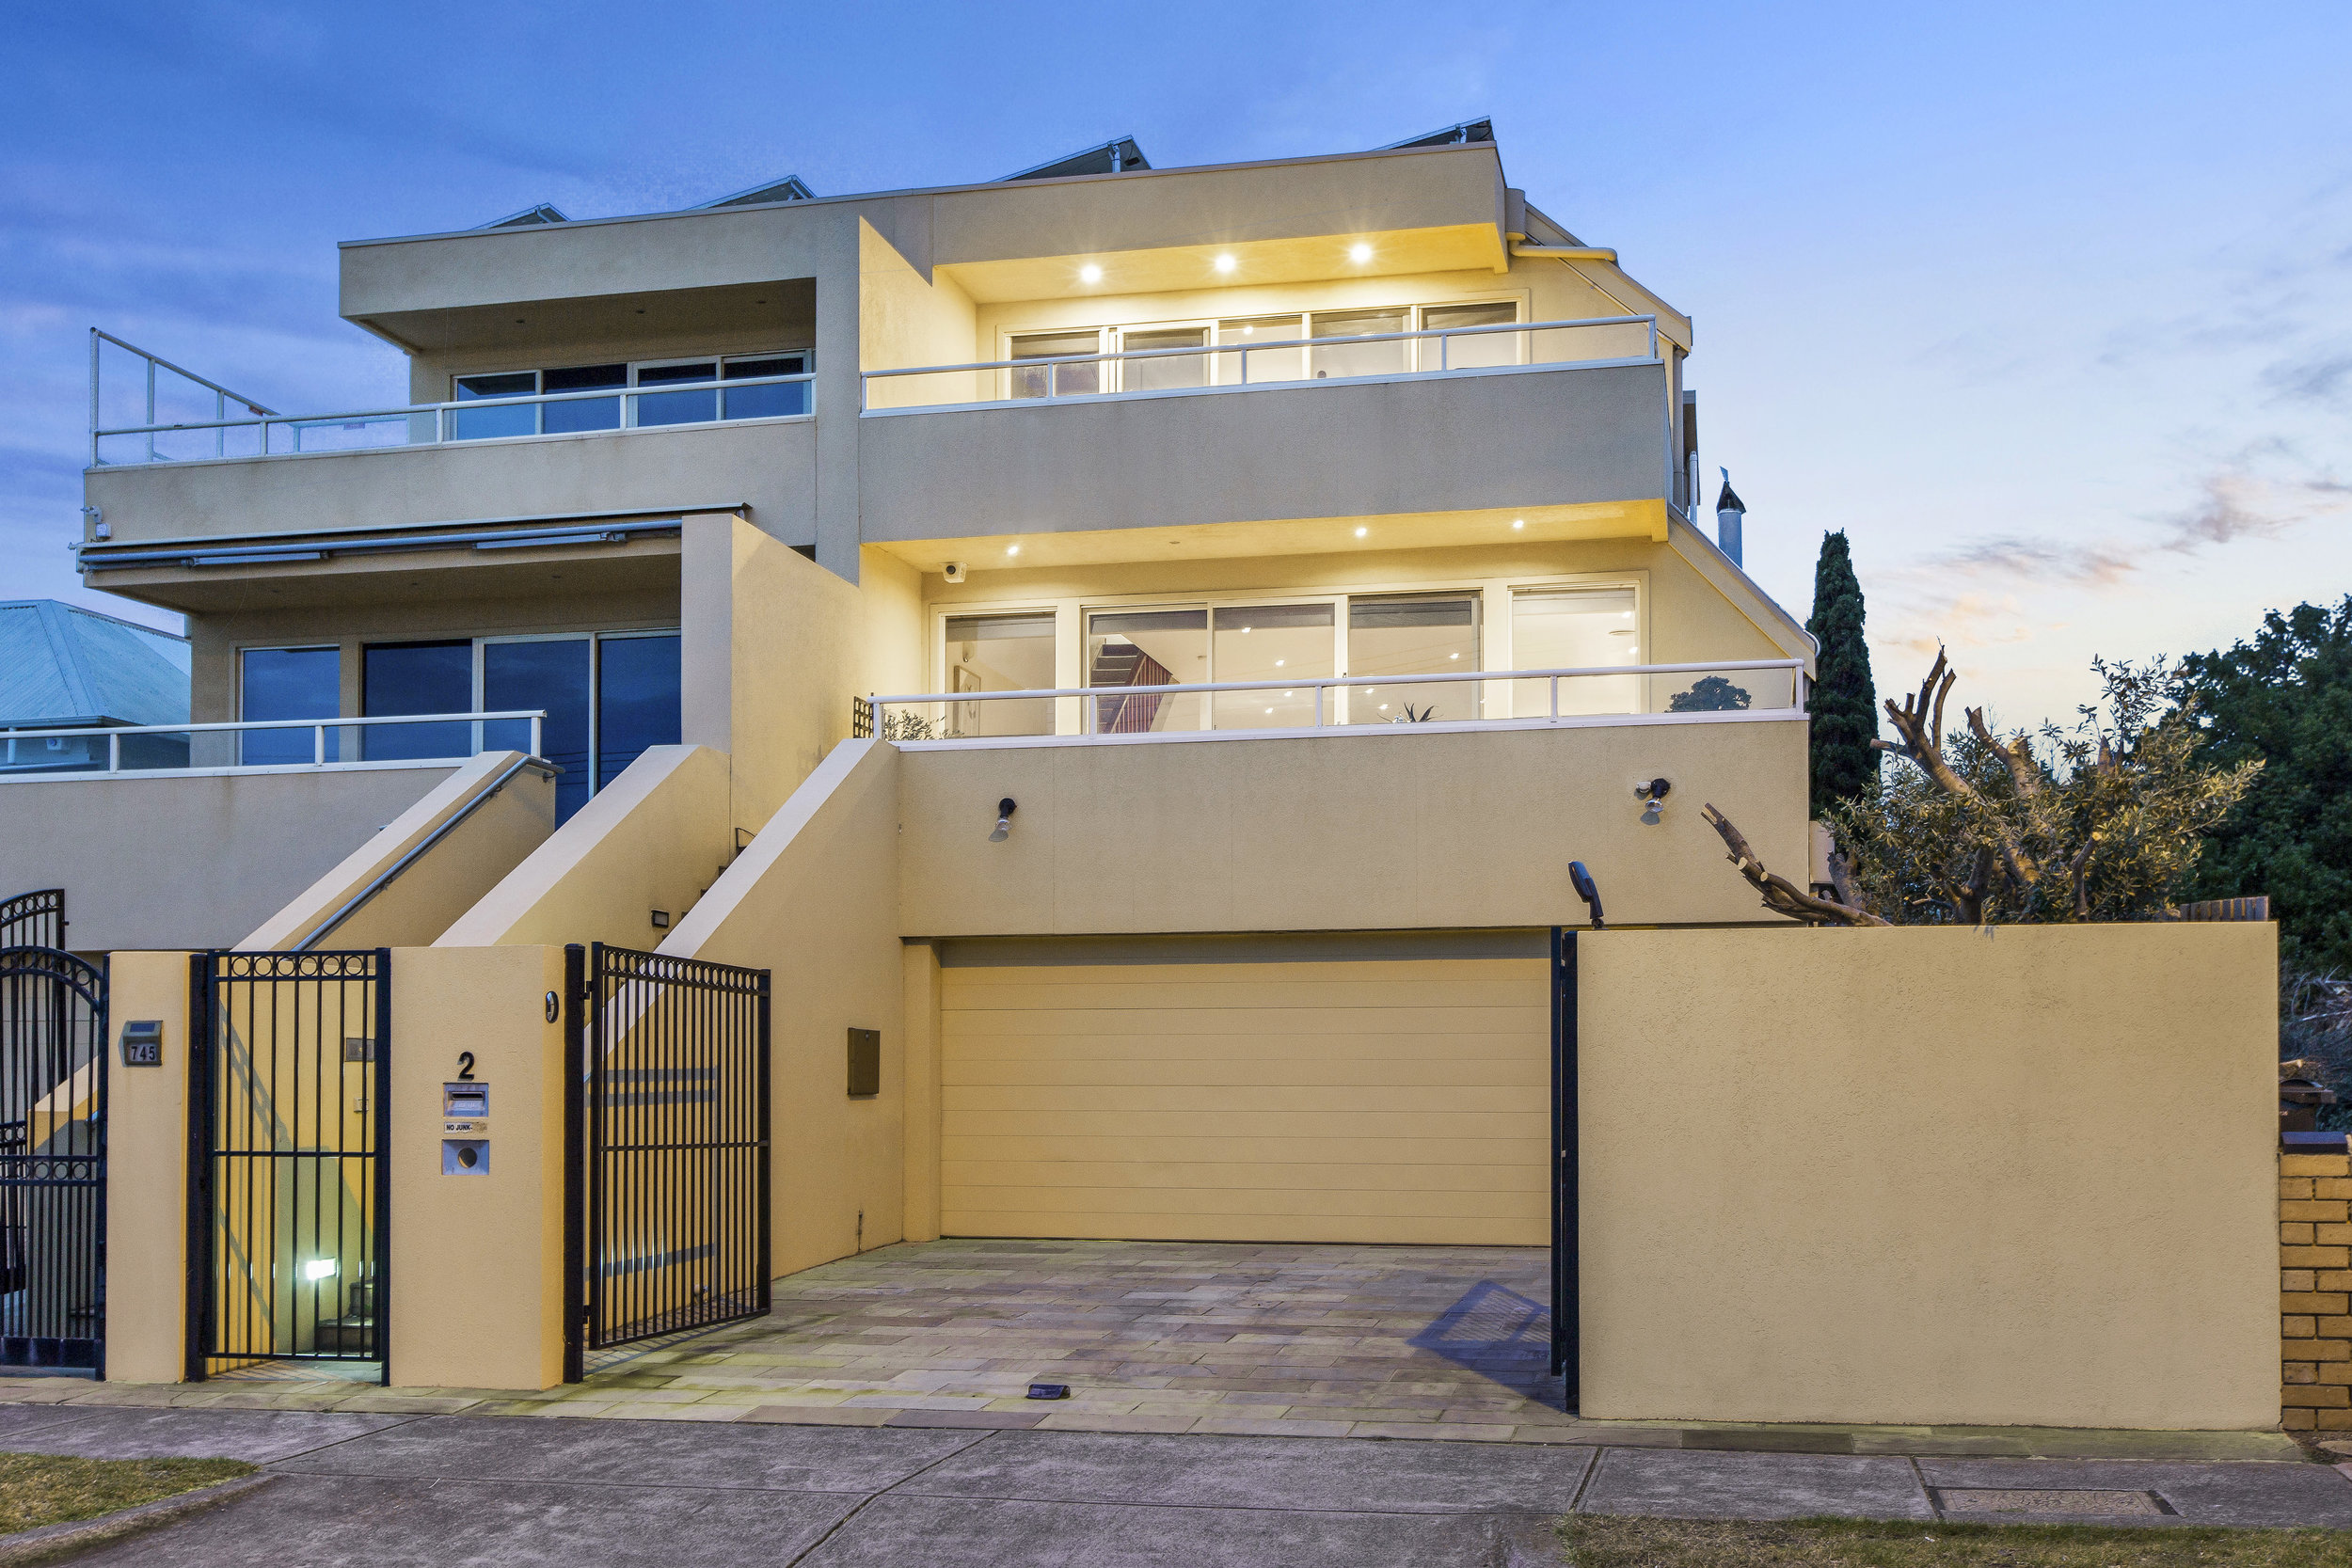 745 Esplanade Mornington SOLD $1,850,000 2018